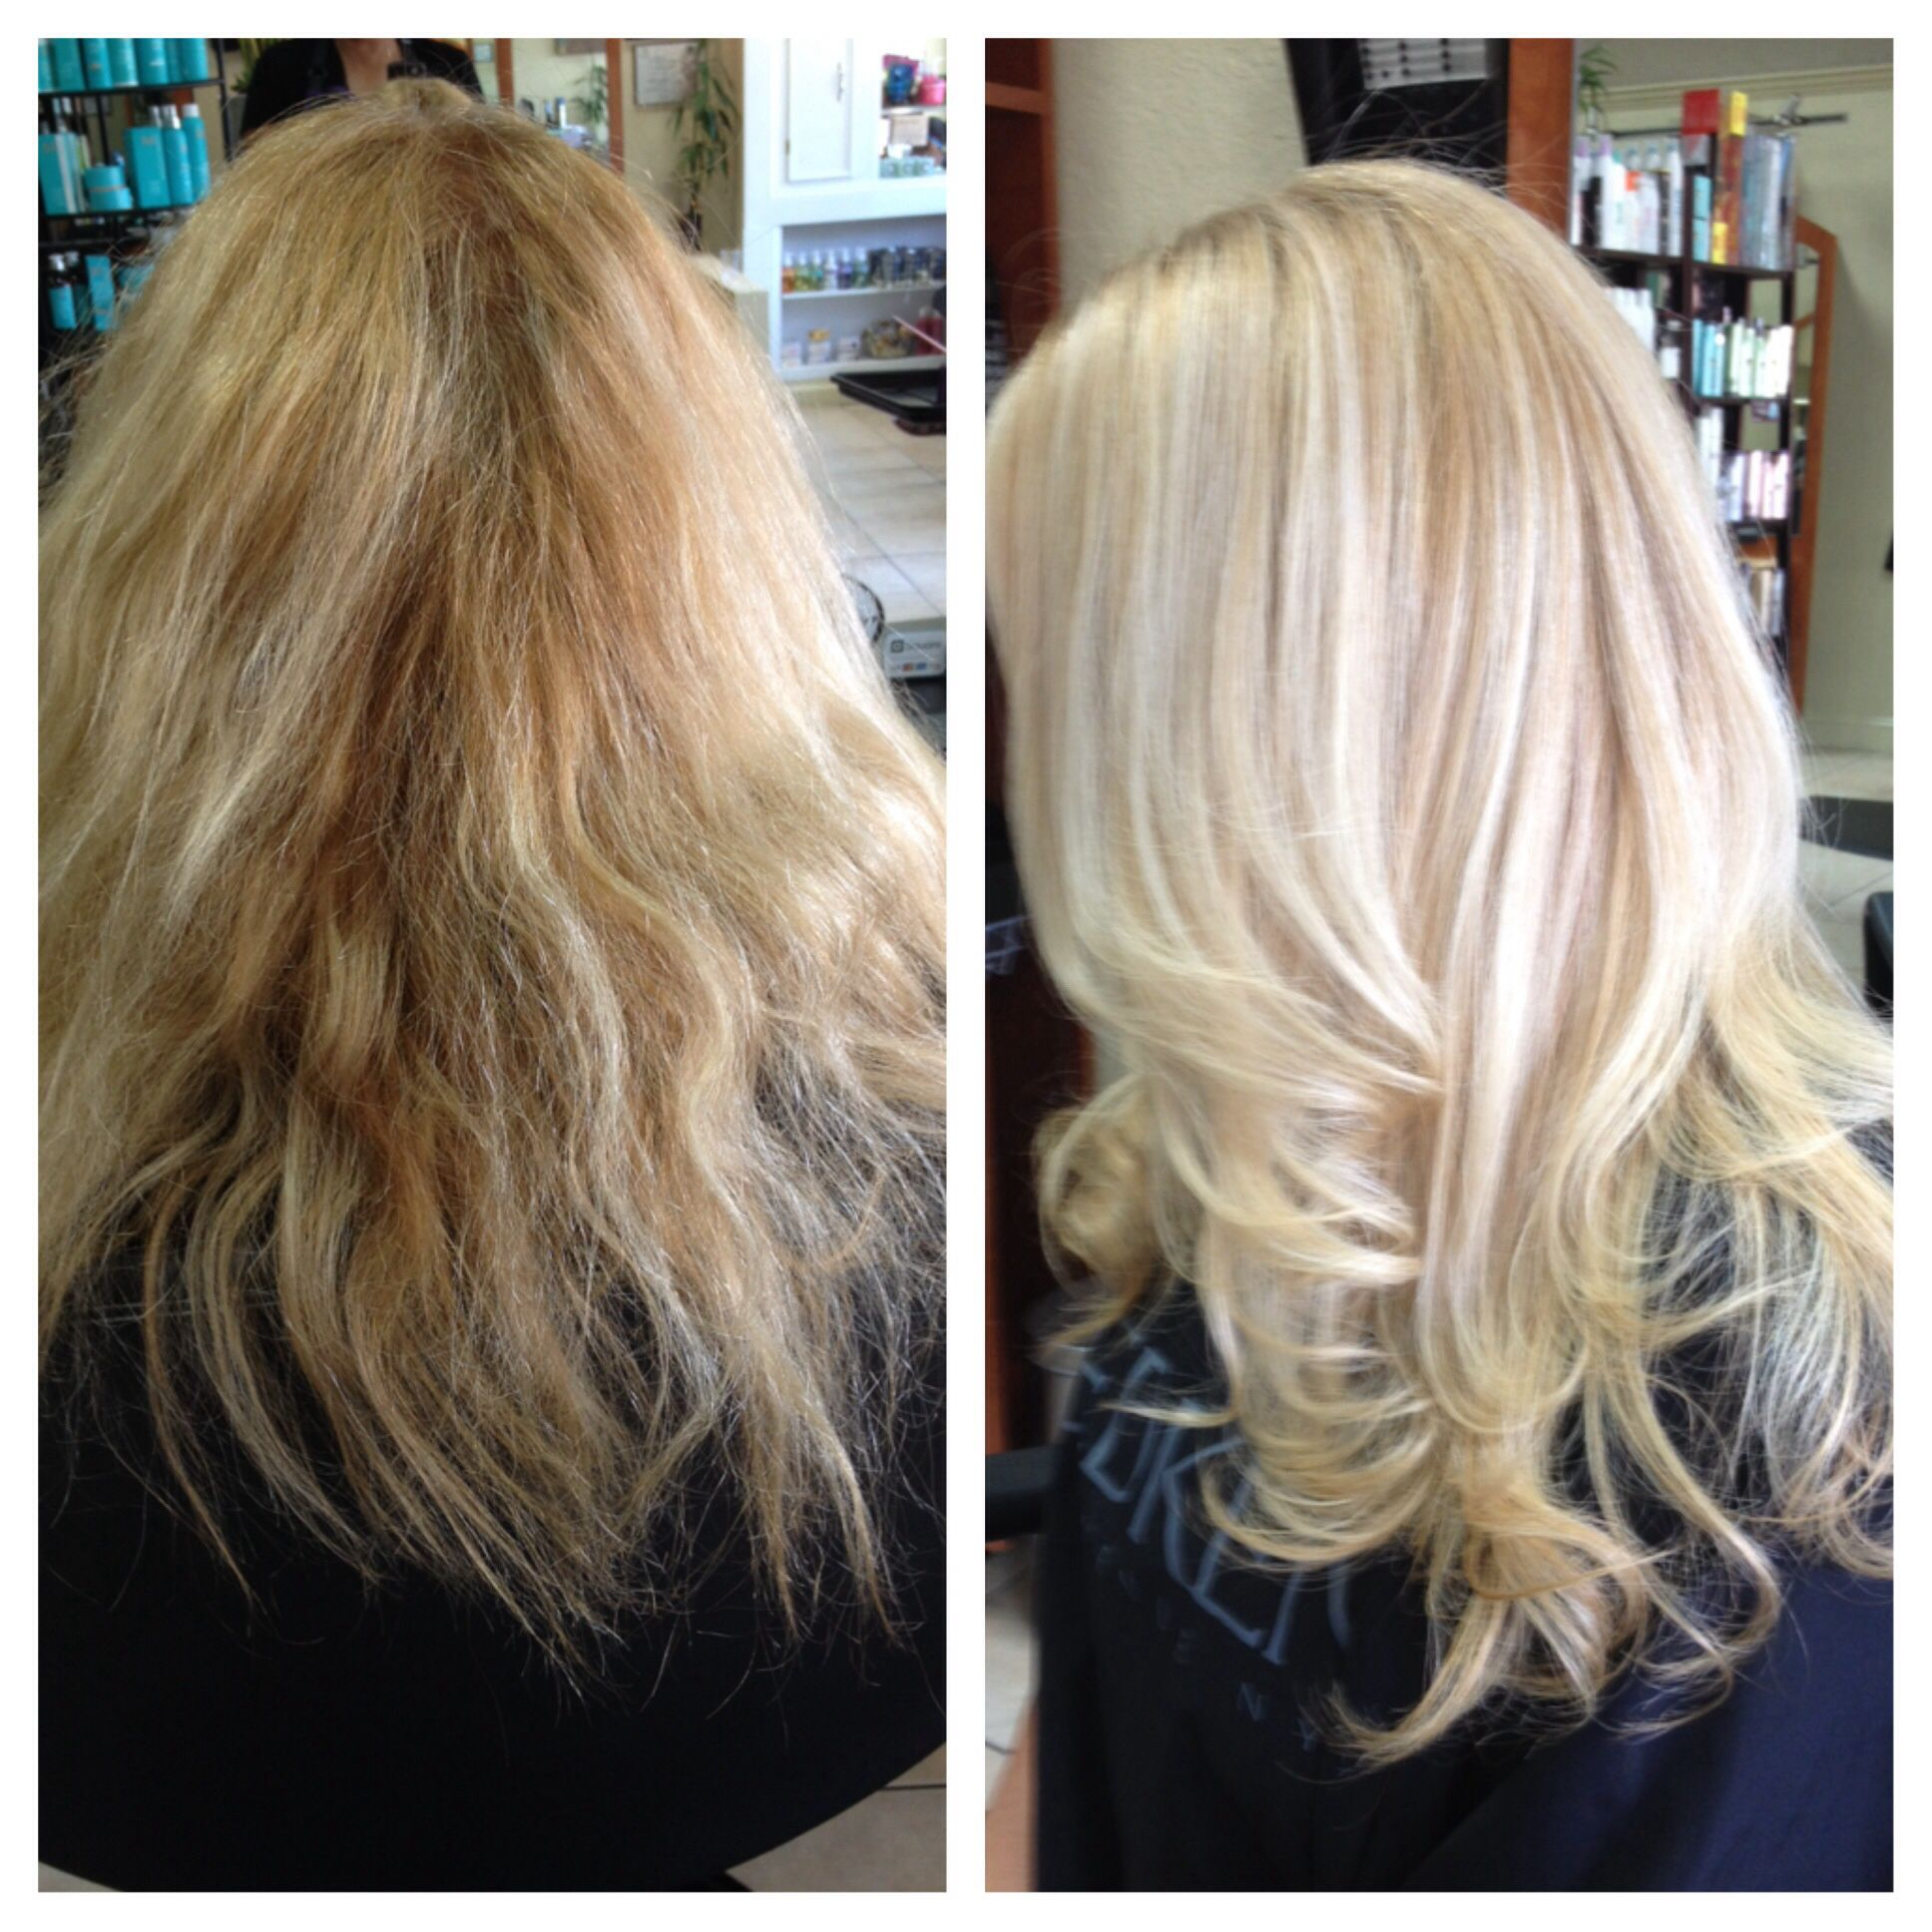 Olaplaex has a board! Check out more before and afters. Before and after with Olaplex!  H A I R